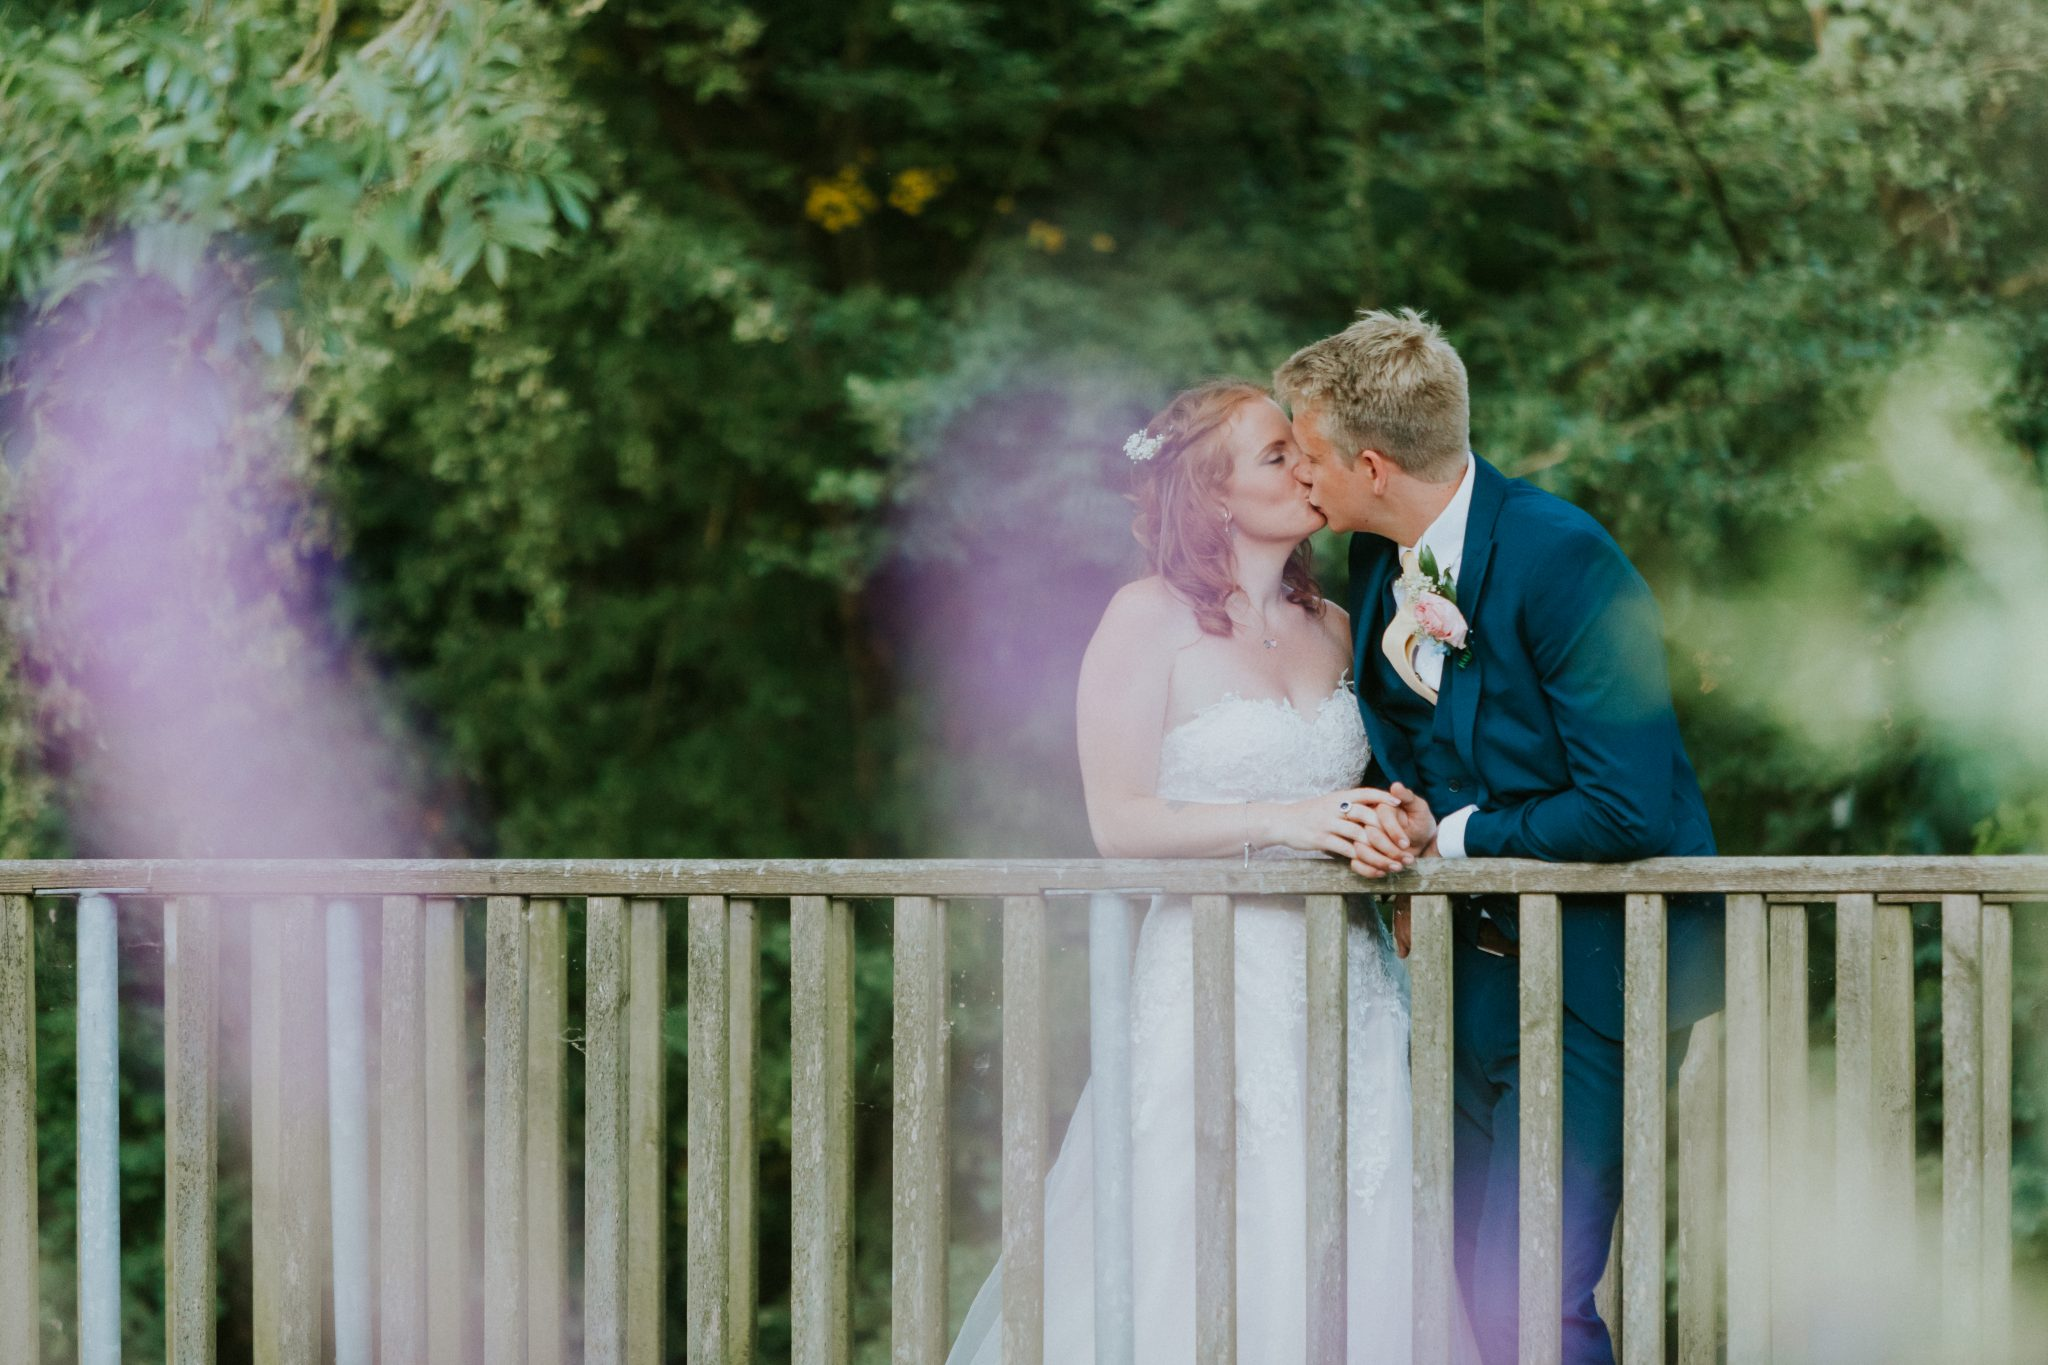 S Butler Photography - Sussex Wedding Photographer - Bailey & Kat - Deans Place Hotel 003